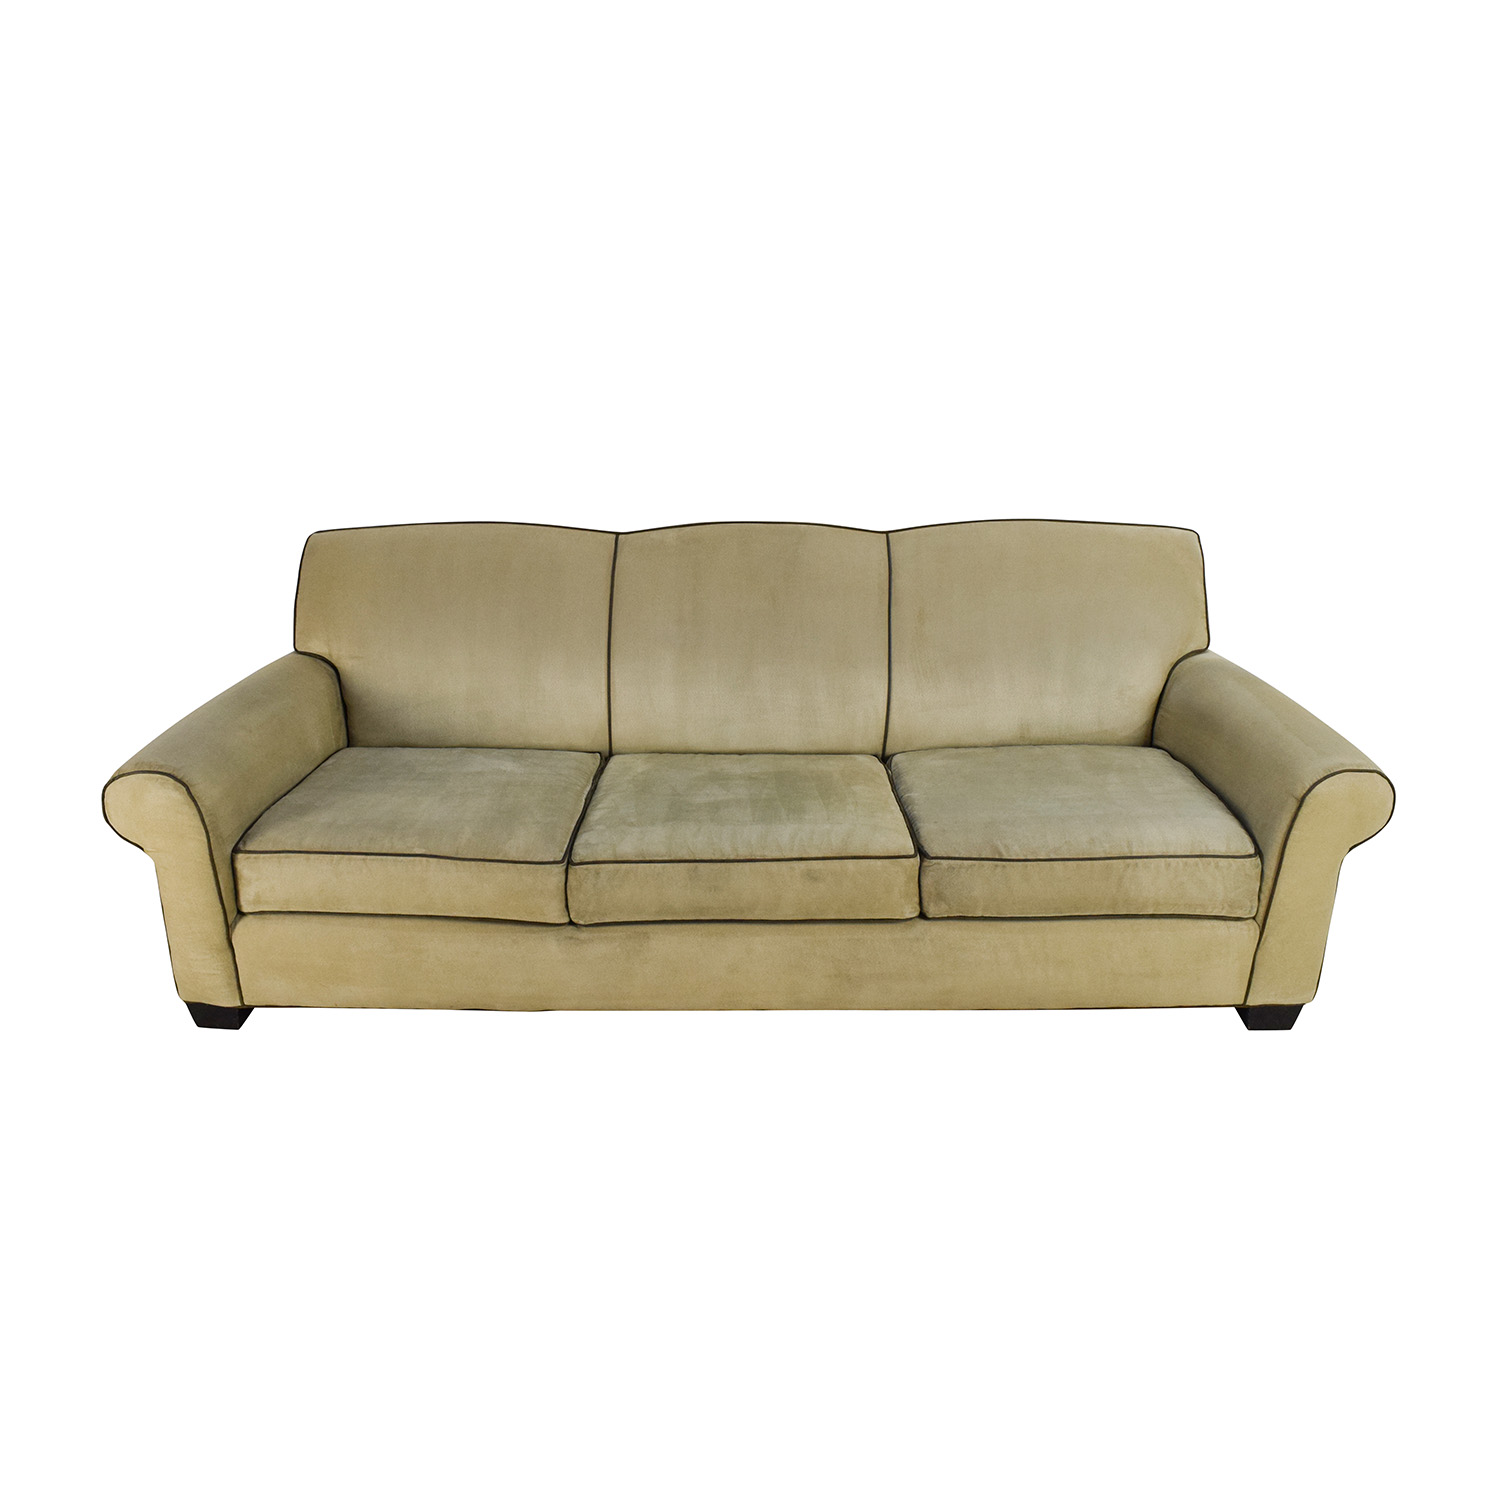 buy Mitchell Gold + Bob Williams Beige Microsuede Sofa Mitchell Gold + Bob Williams Sofas